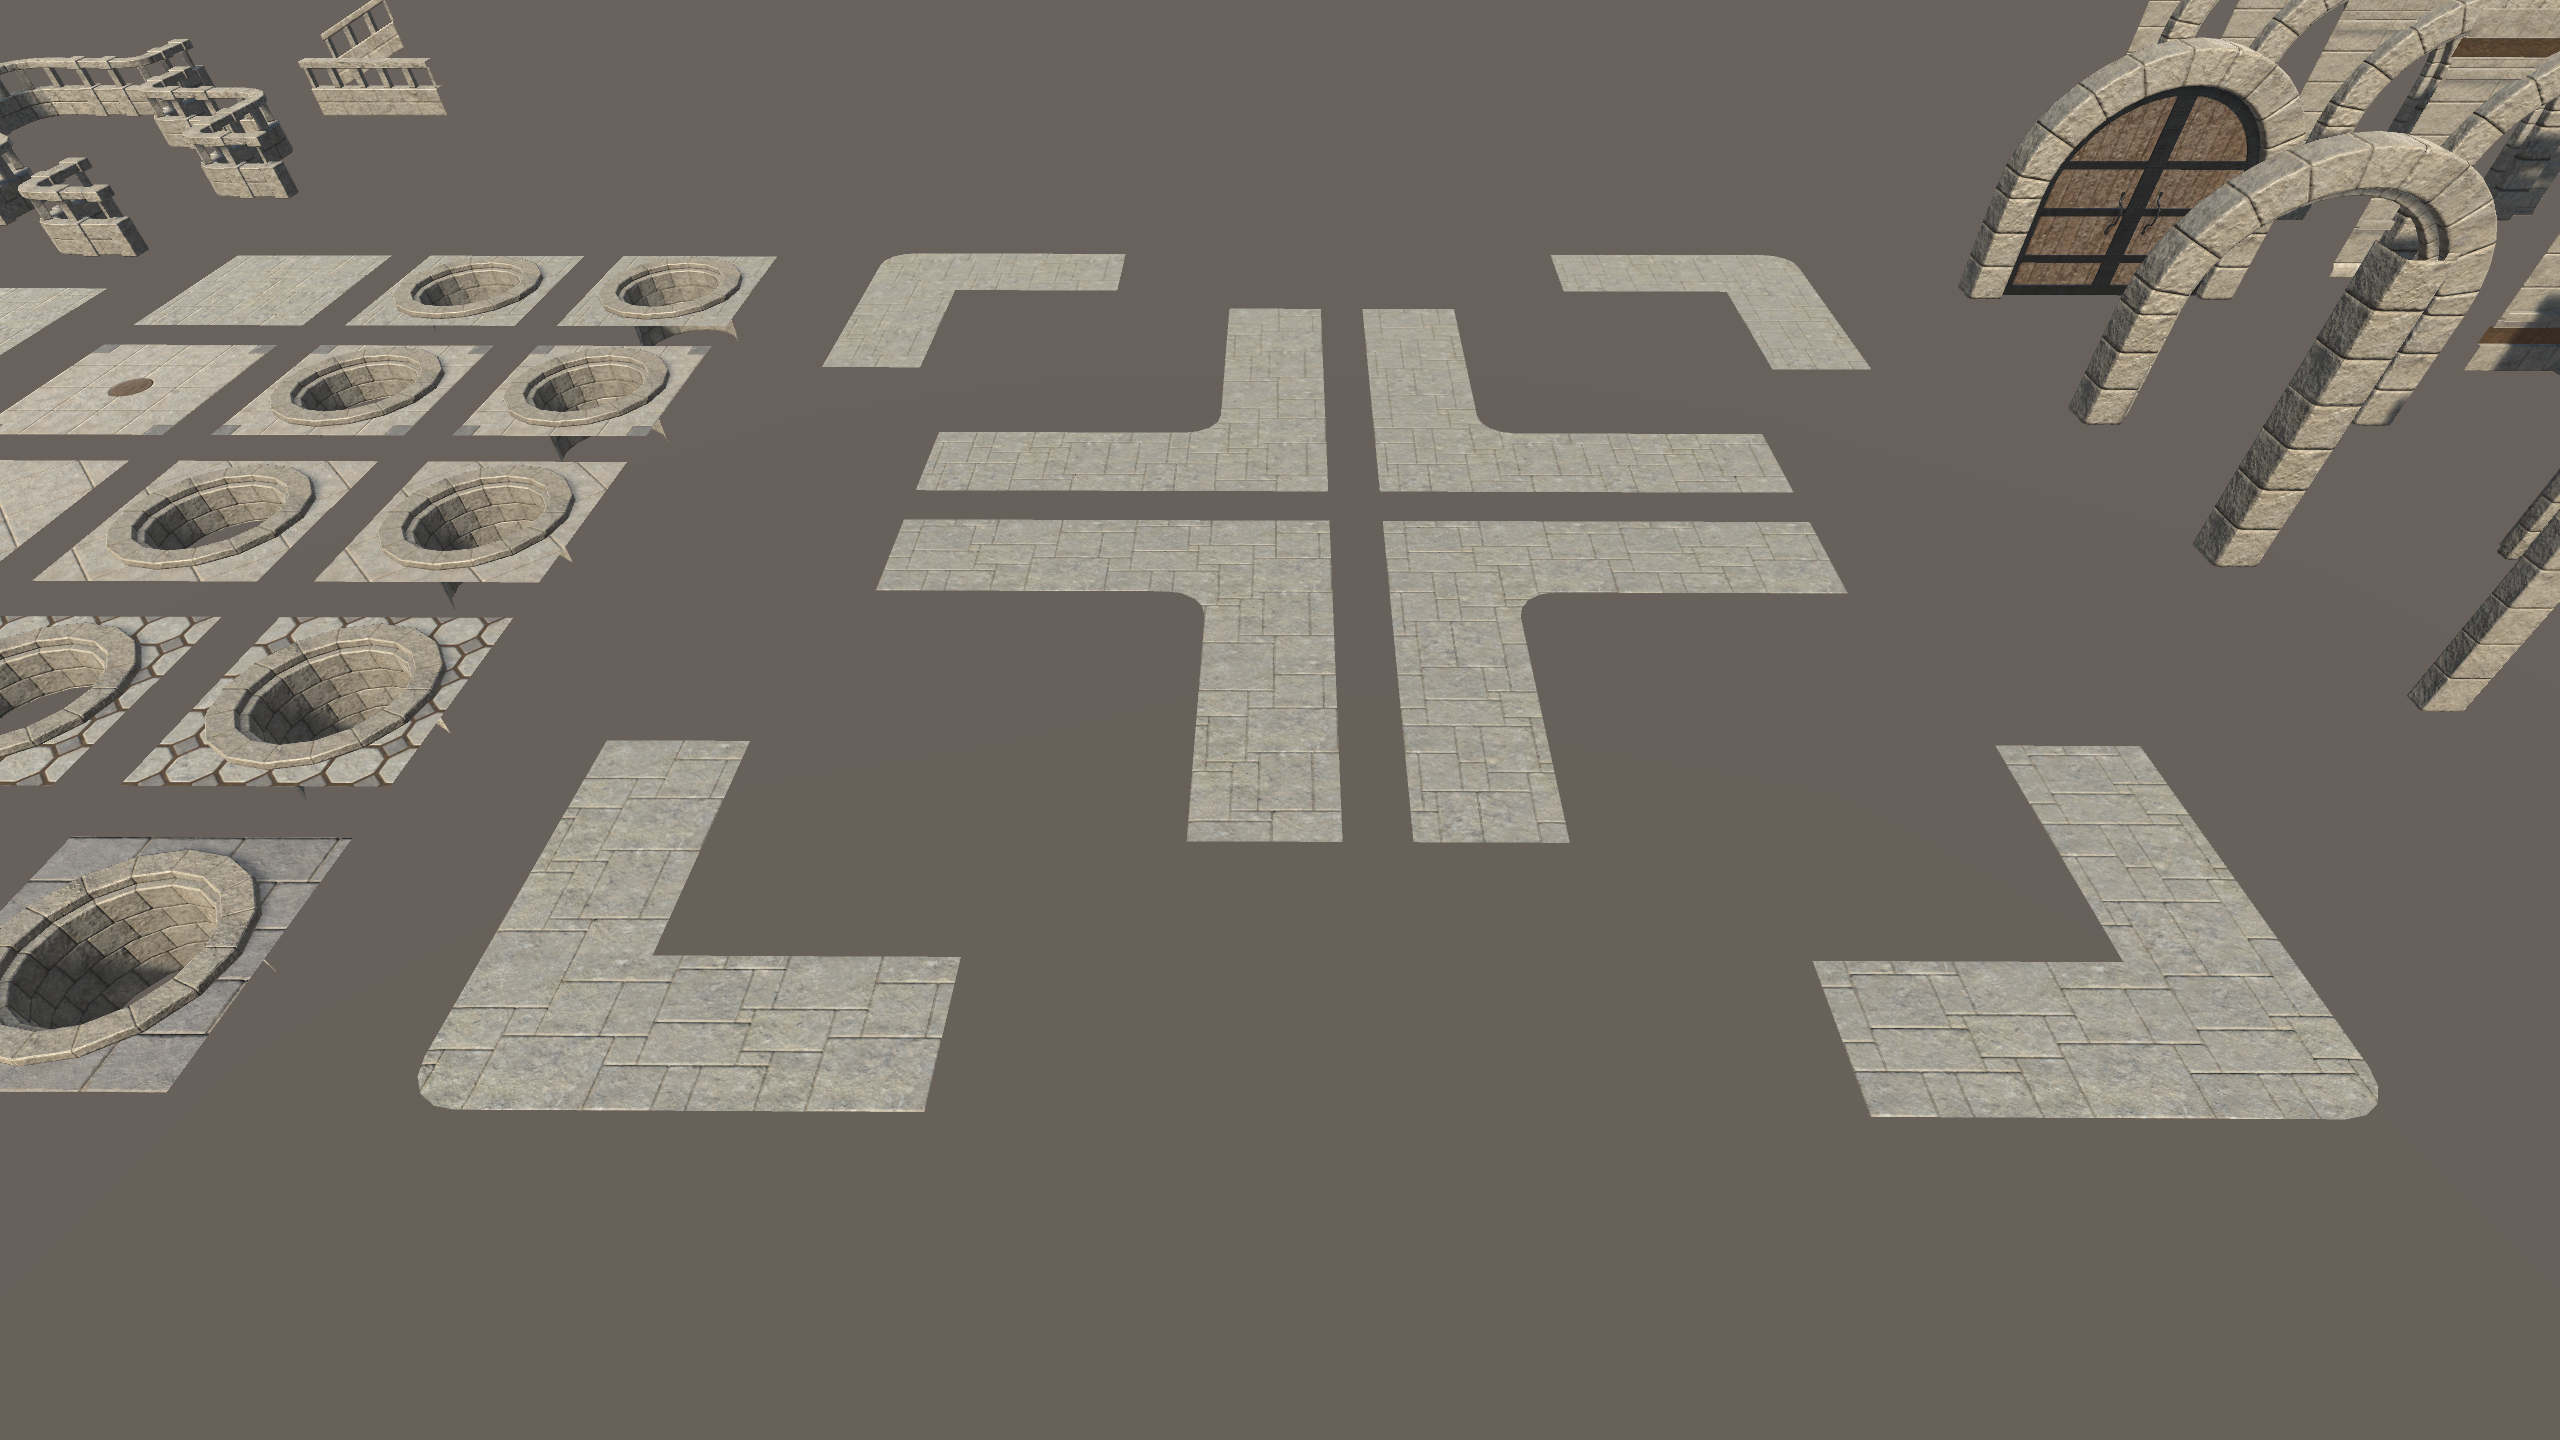 Infi-Dungeon v1.0, Floors, Arches, and Stairs